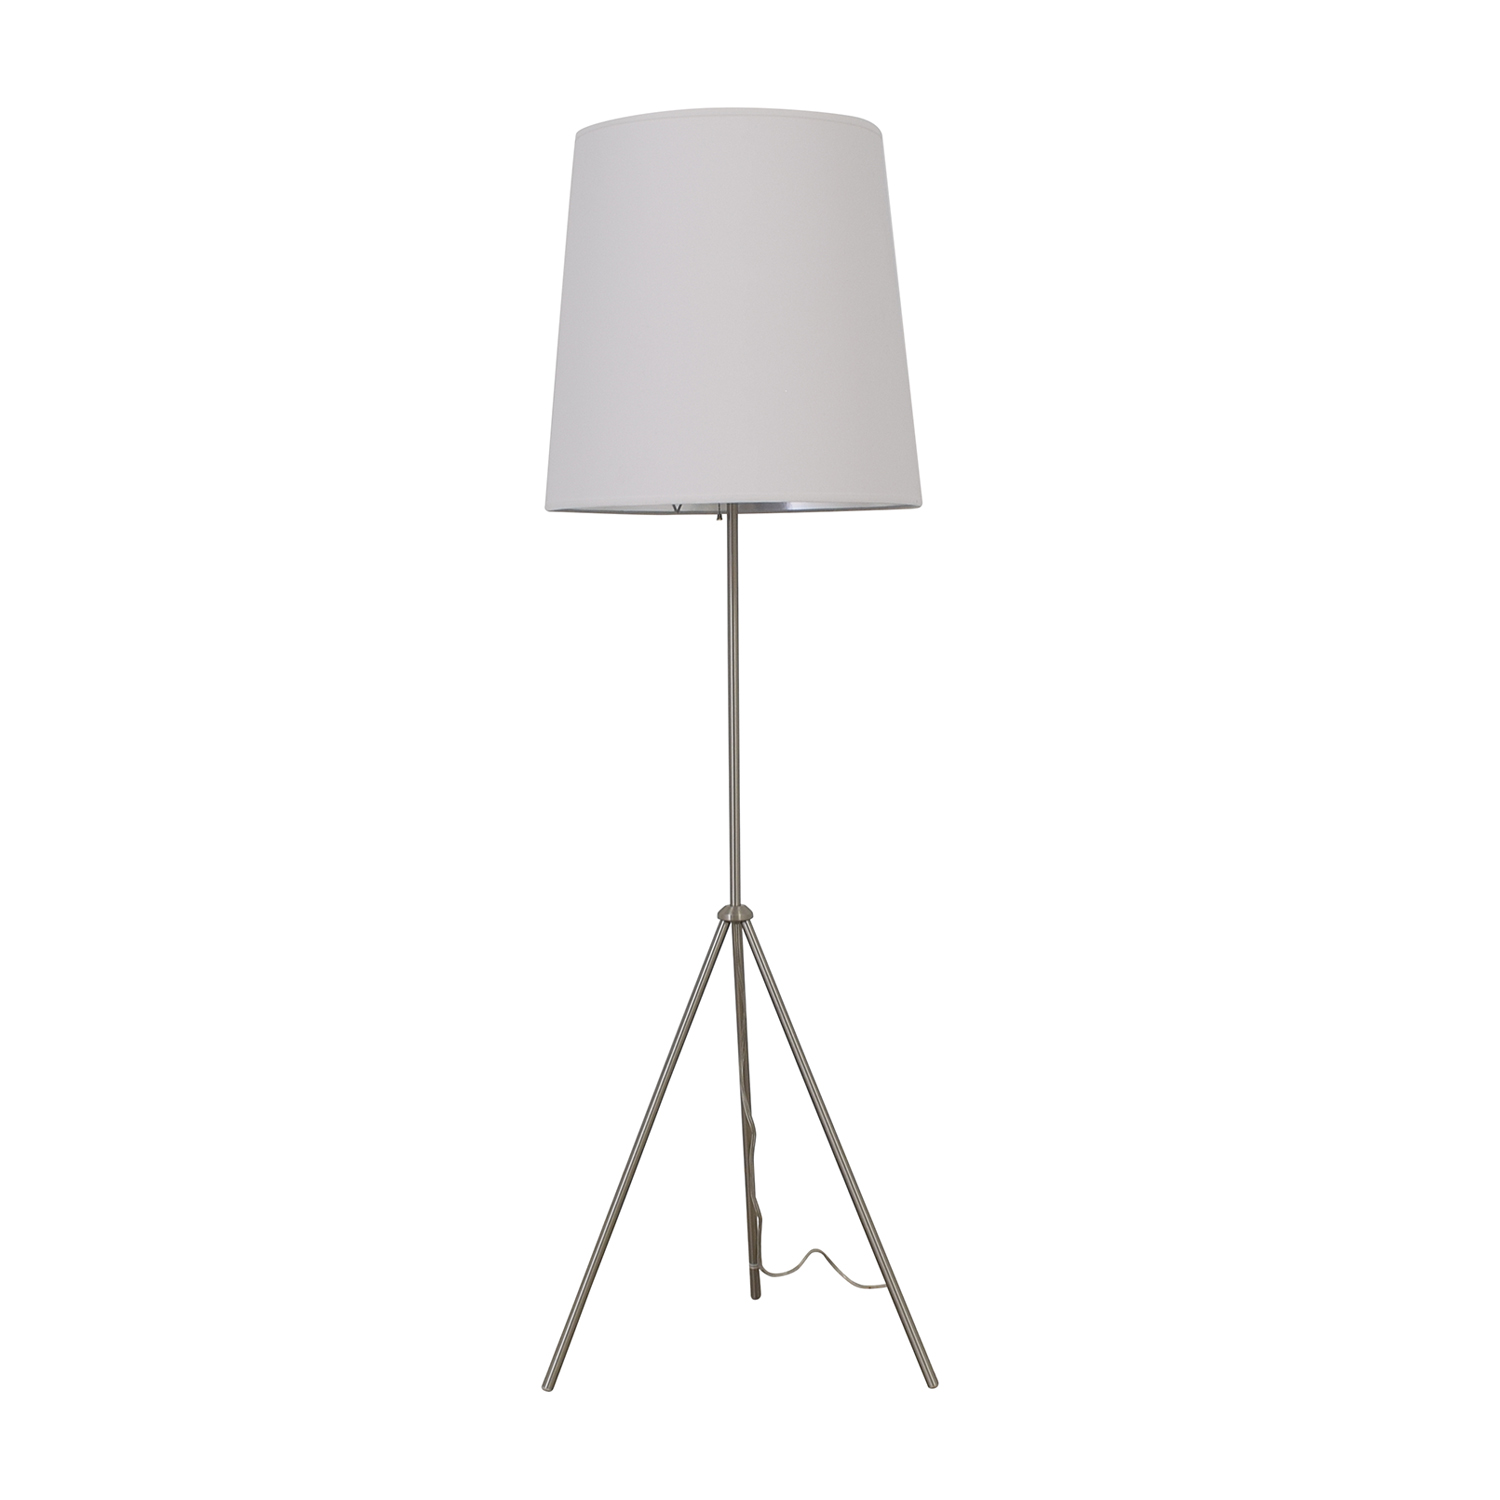 Wayfair Tripod Floor Lamp / Lamps